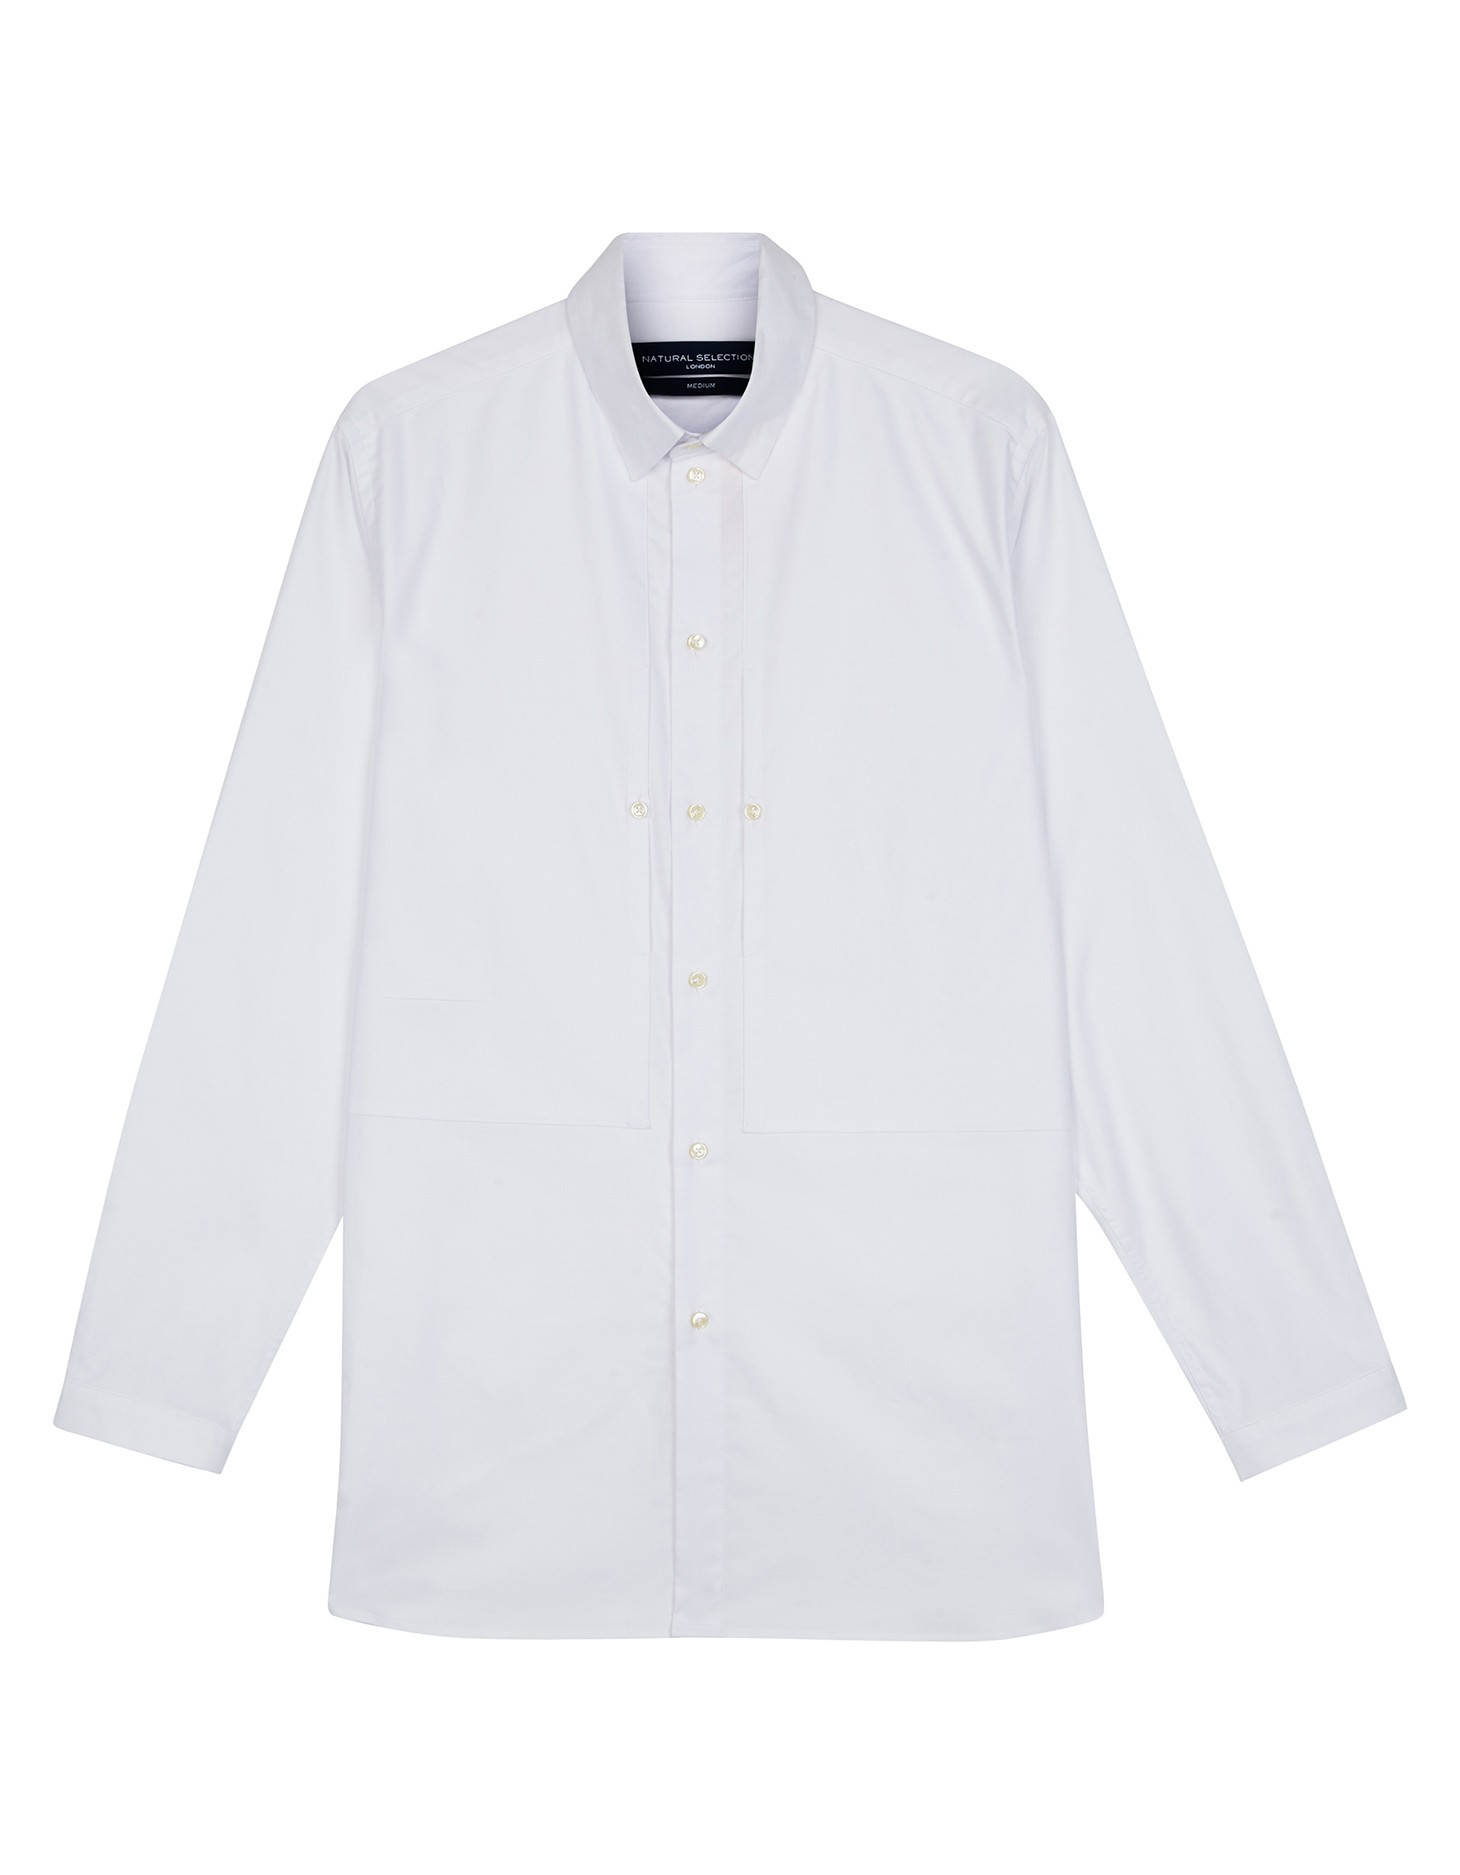 Natural Selection Leander Shirt Oxford White